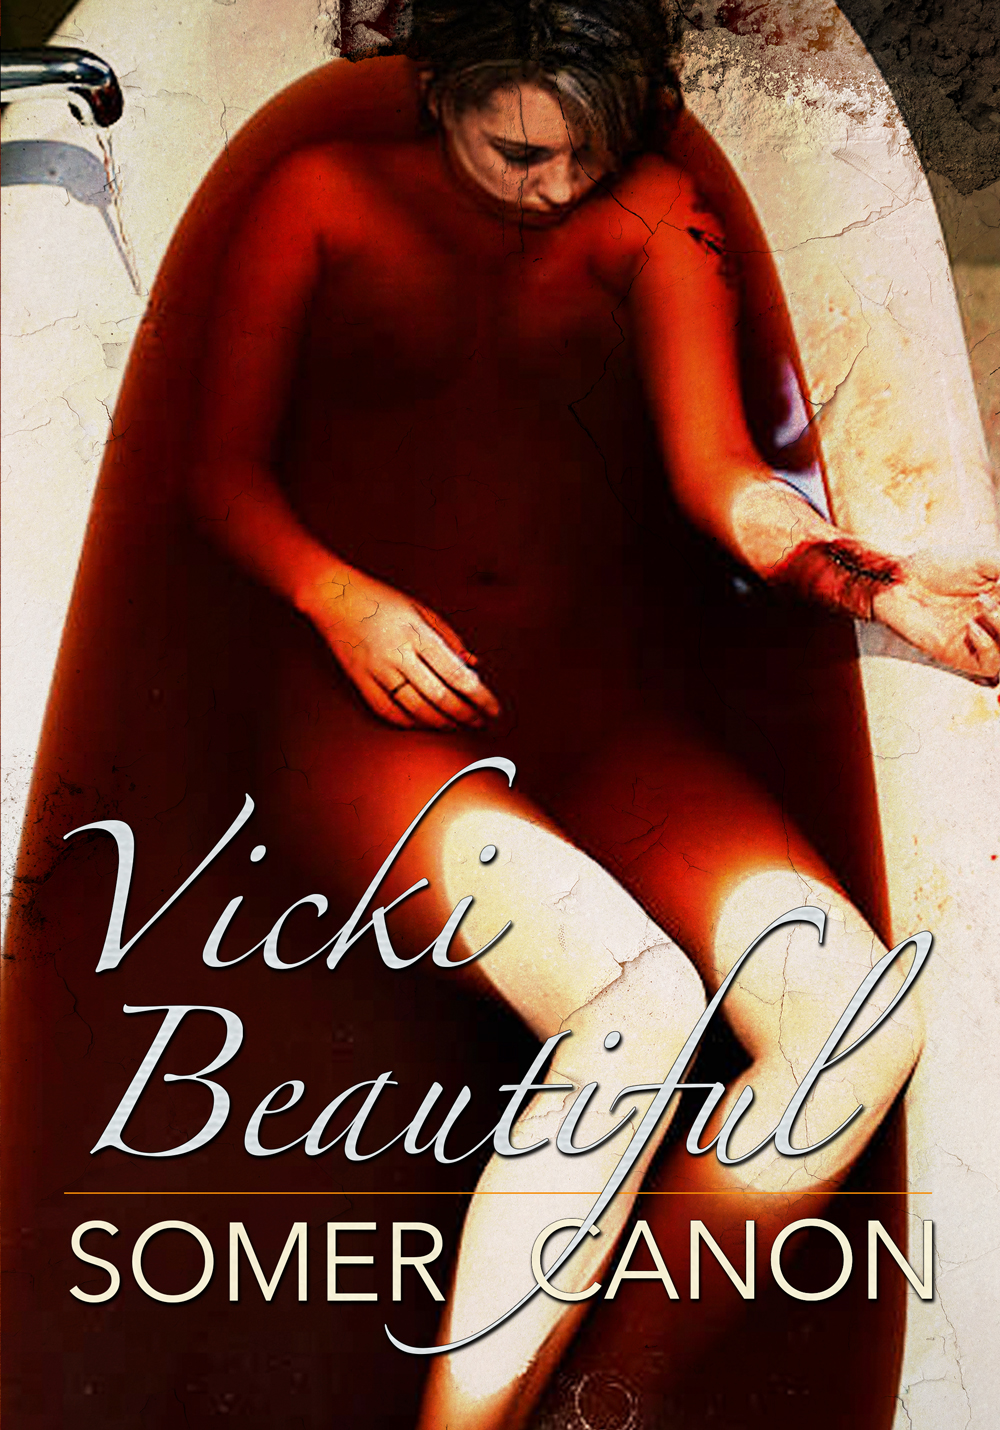 Vicki Beautiful